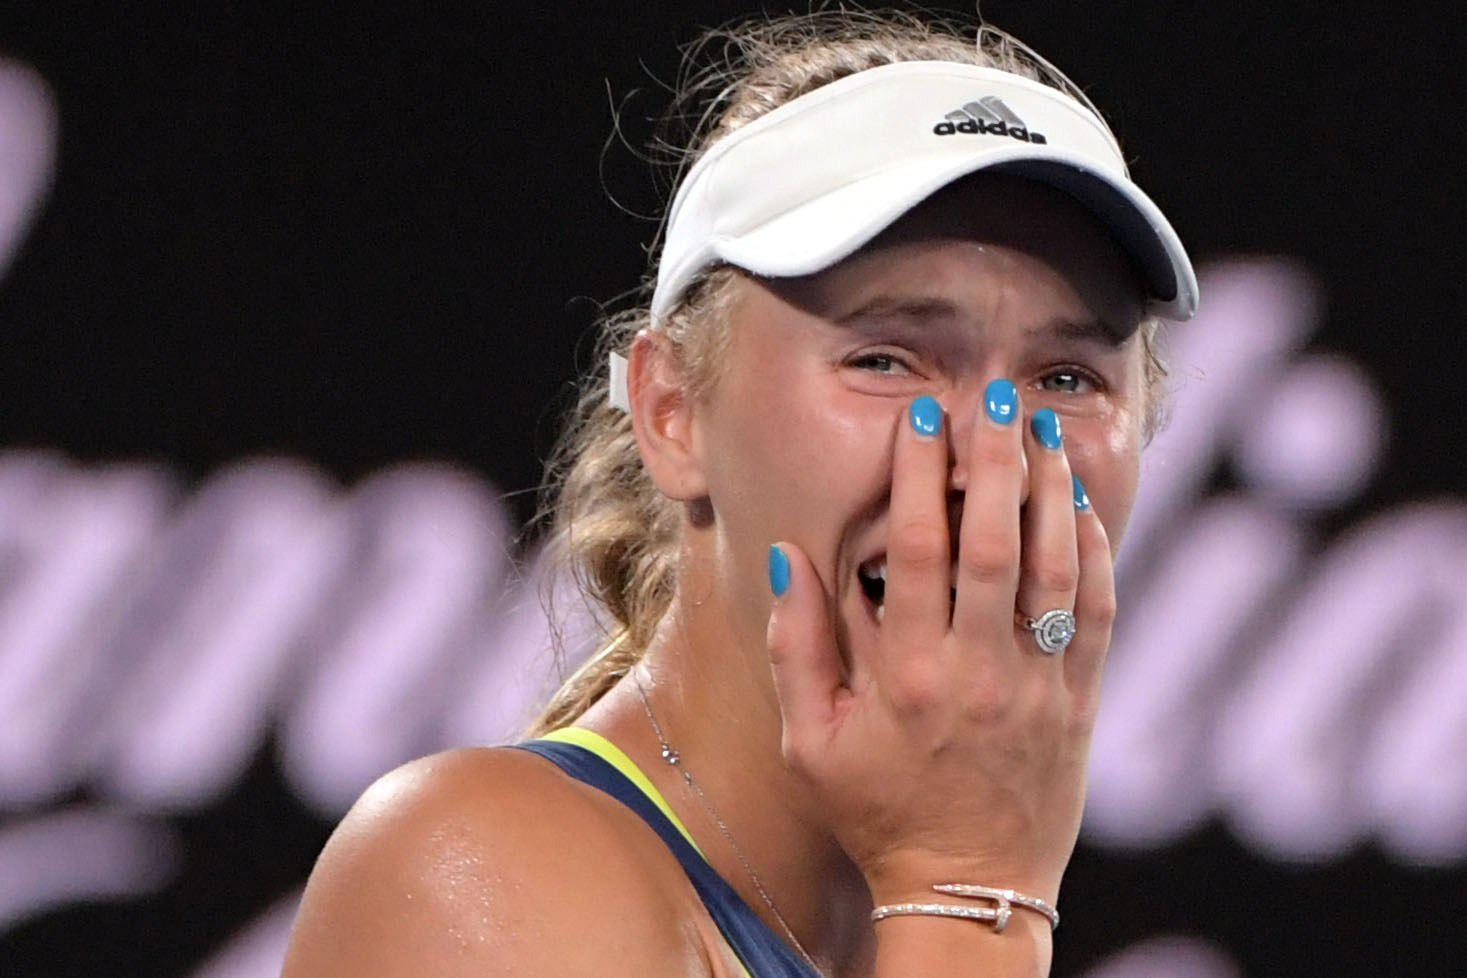 Wozniacki was teary and emotional after clinching her first Grand Slam title